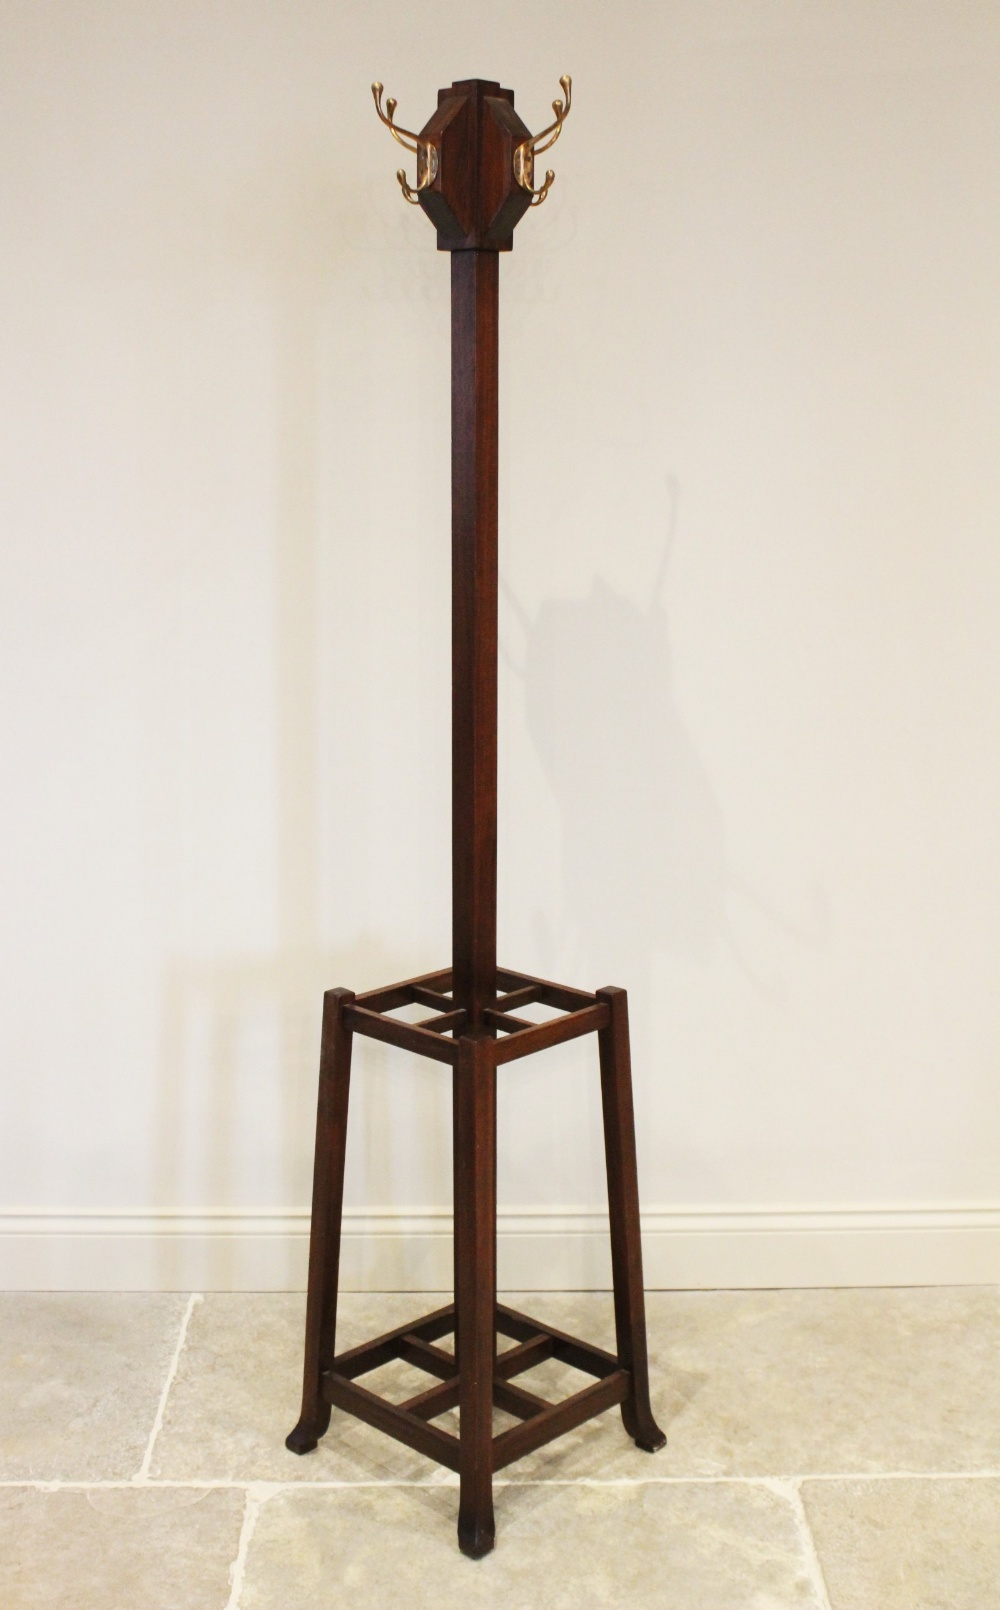 An early 20th century Arts and Crafts mahogany freestanding coat/hat stand, the four brass hooks